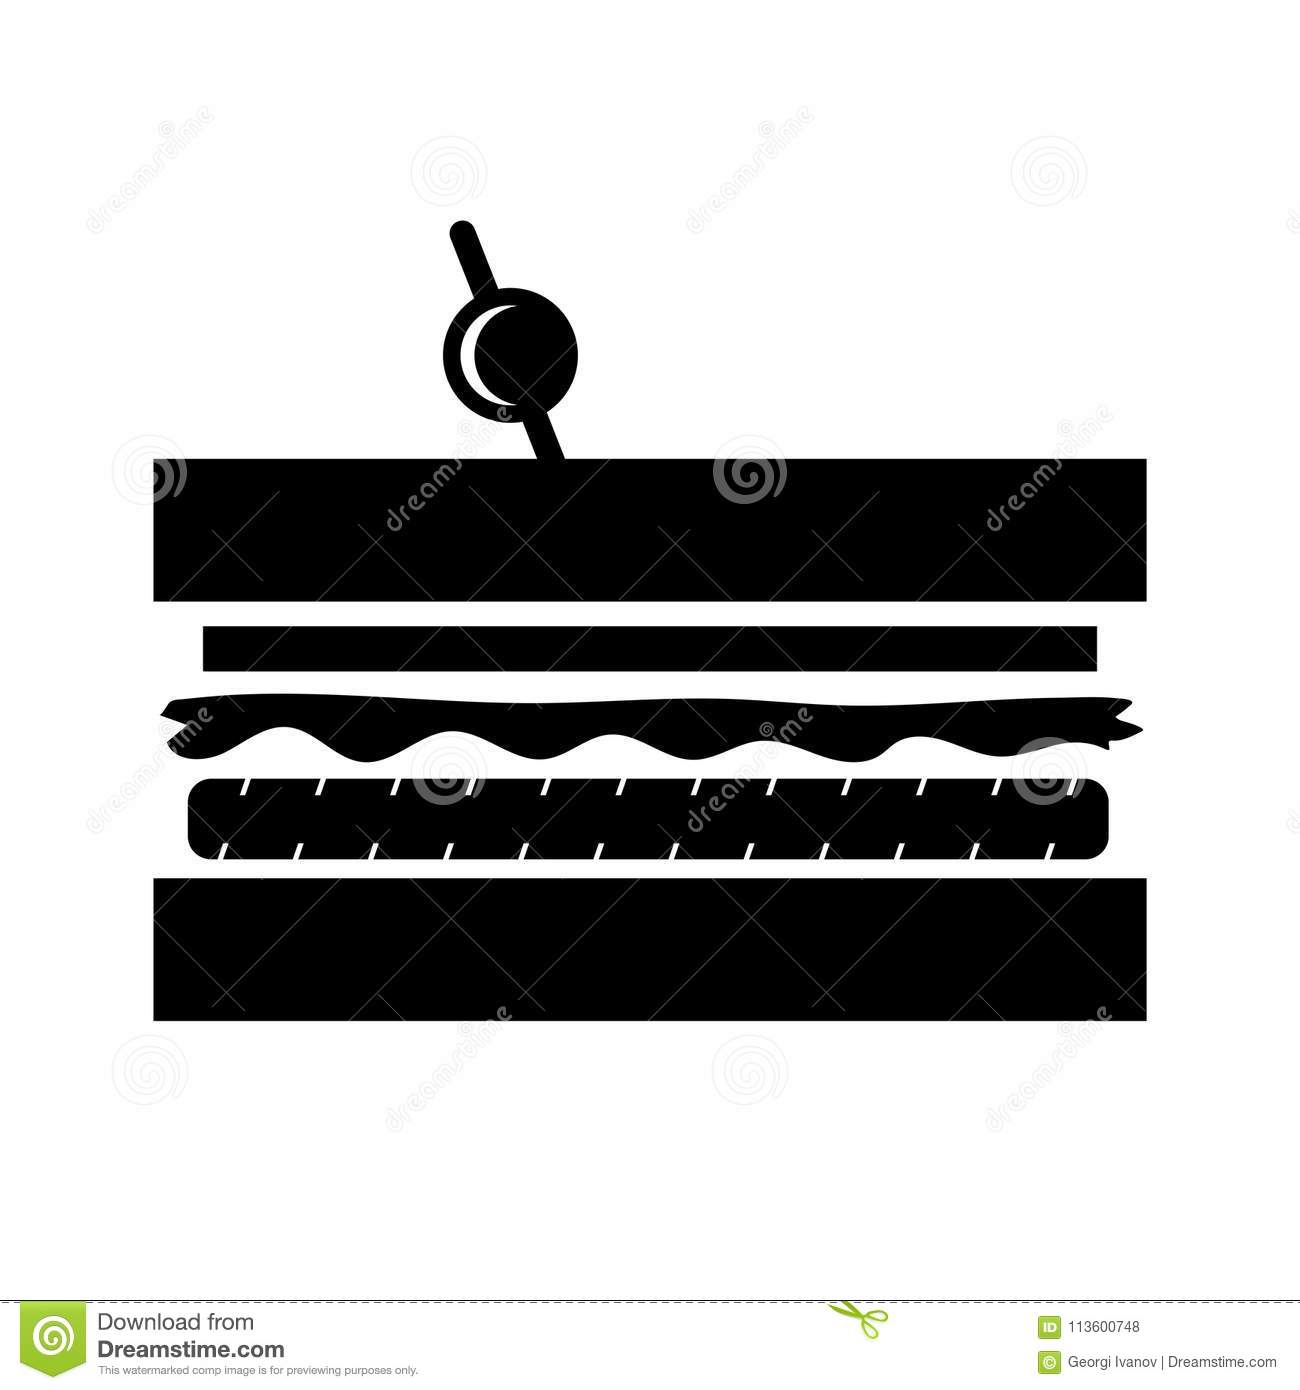 Simple, flat, black club sandwich silhouette illustration/icon. Isolated on white